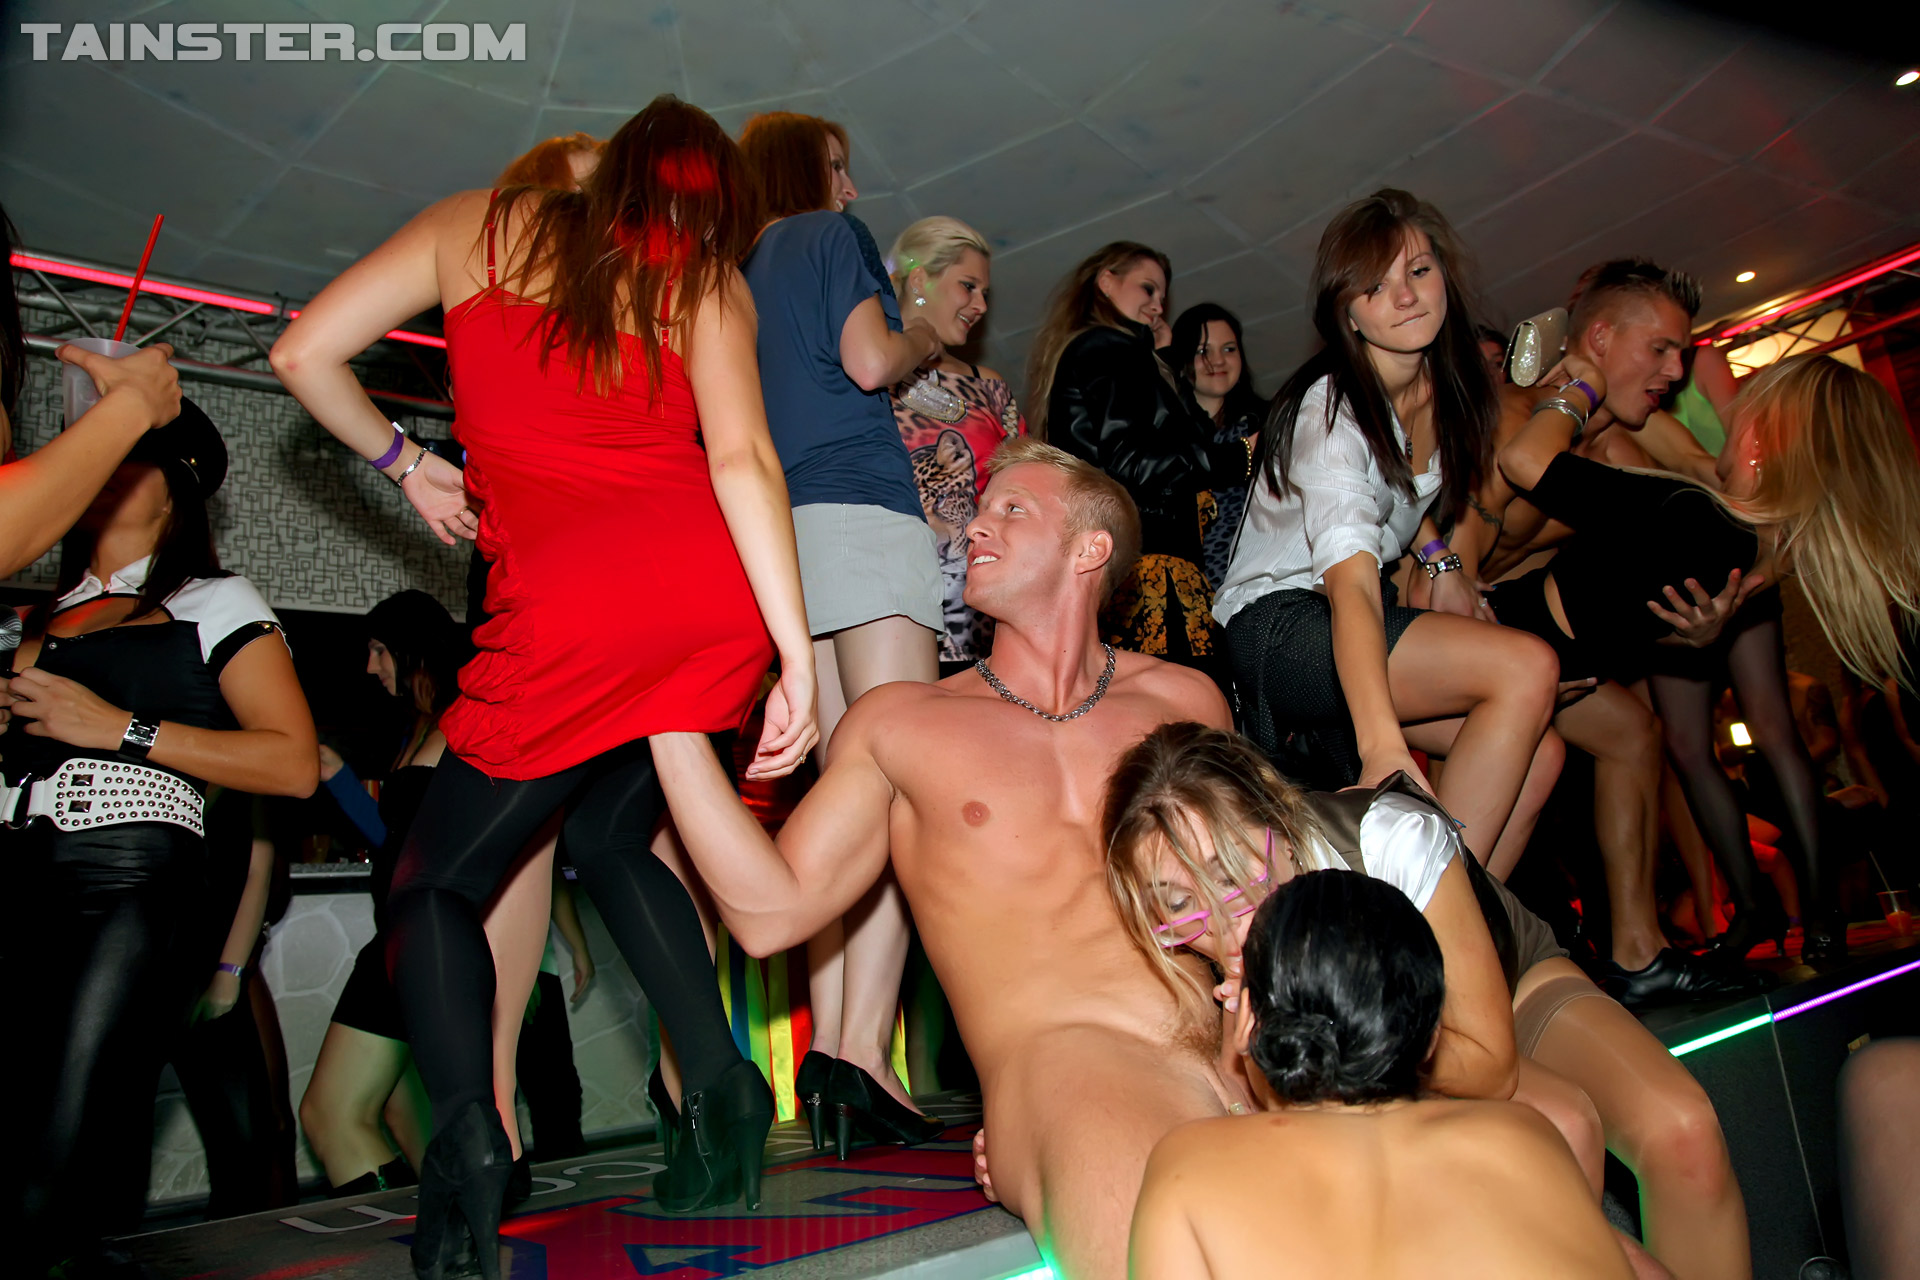 Hot Party Girls In A Wild Sex Party Fucking Hardcore Sex -6385